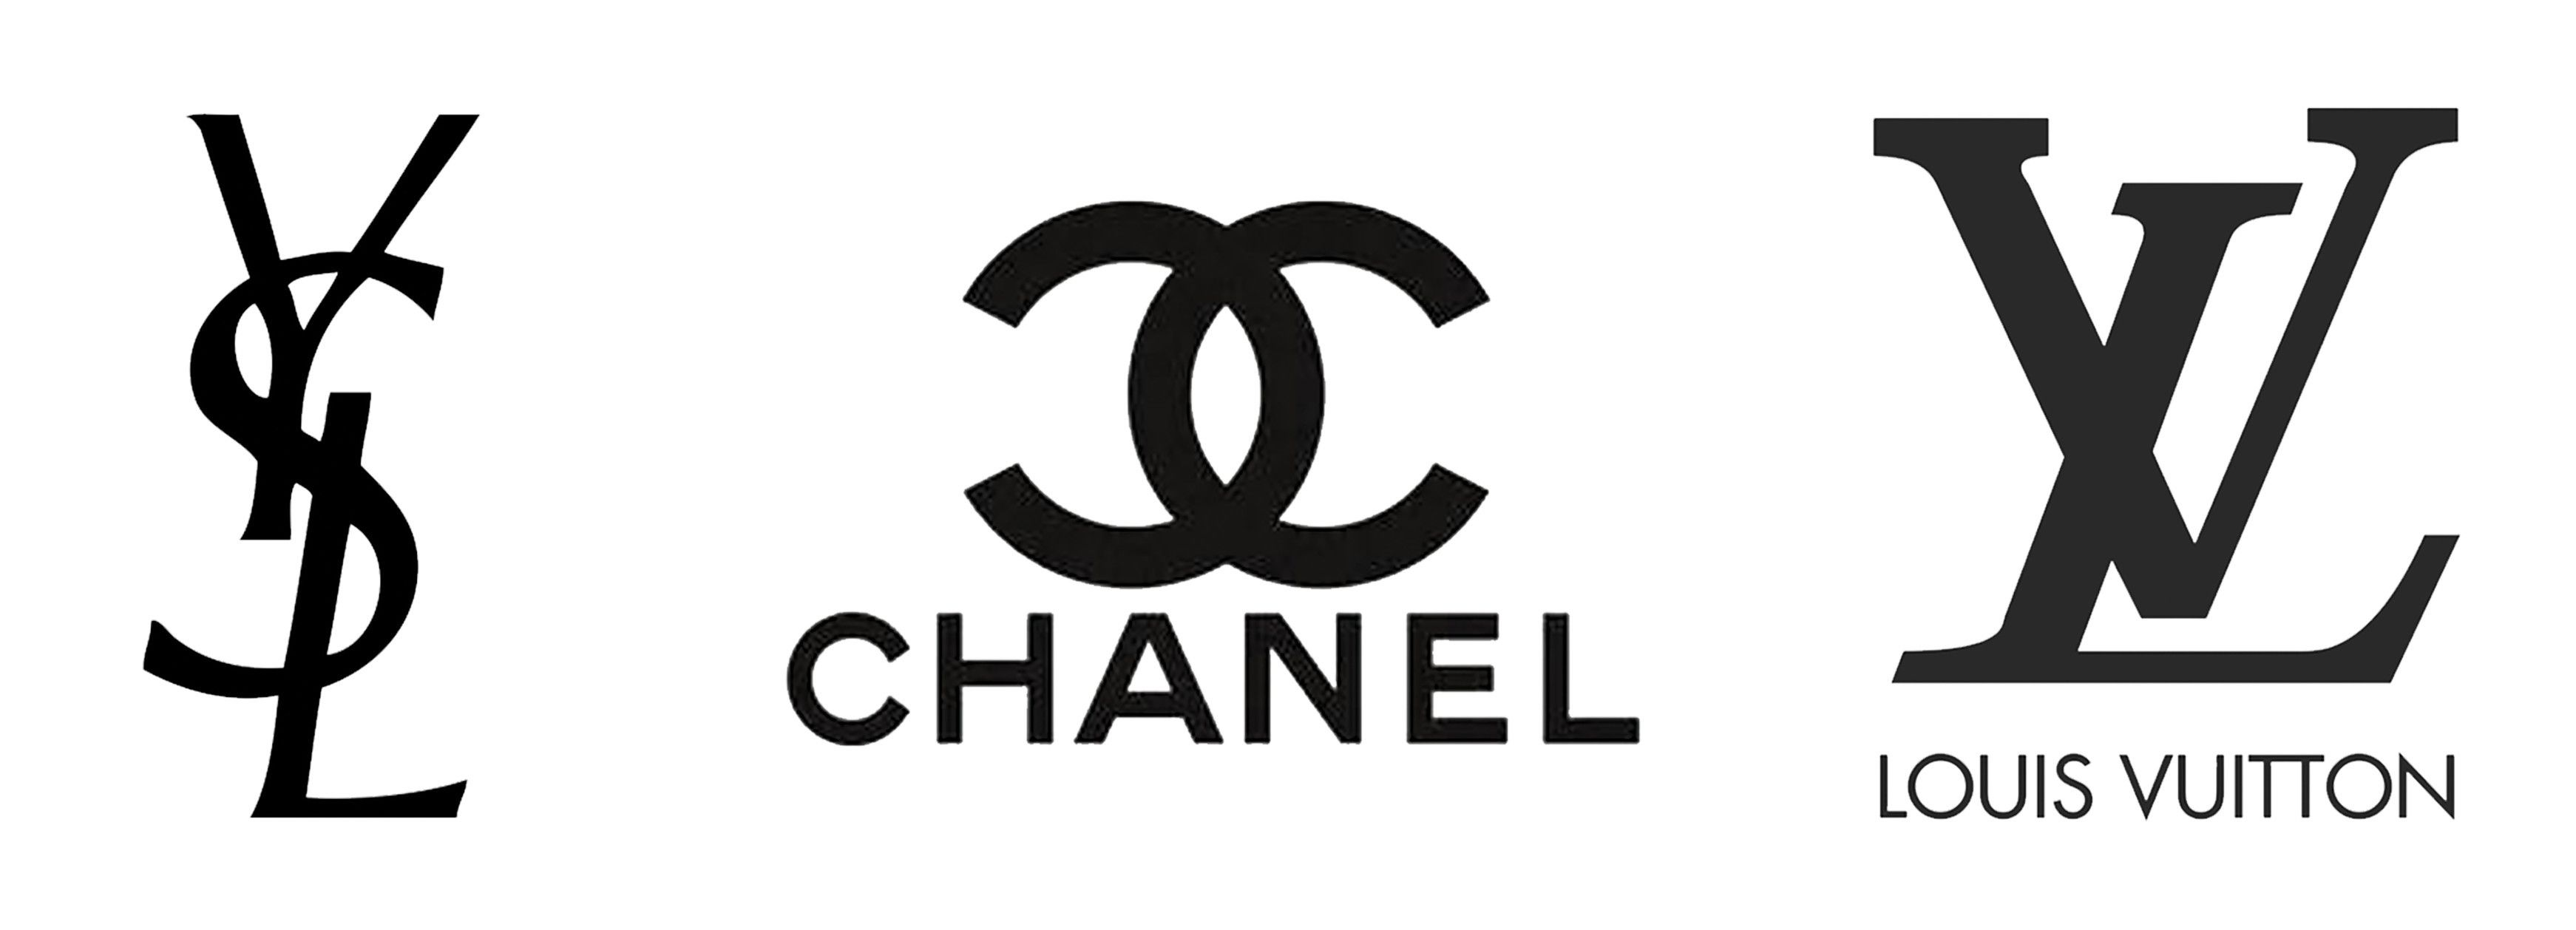 Chanel Logo - 63+ Chanel Logo Wallpapers on WallpaperPlay